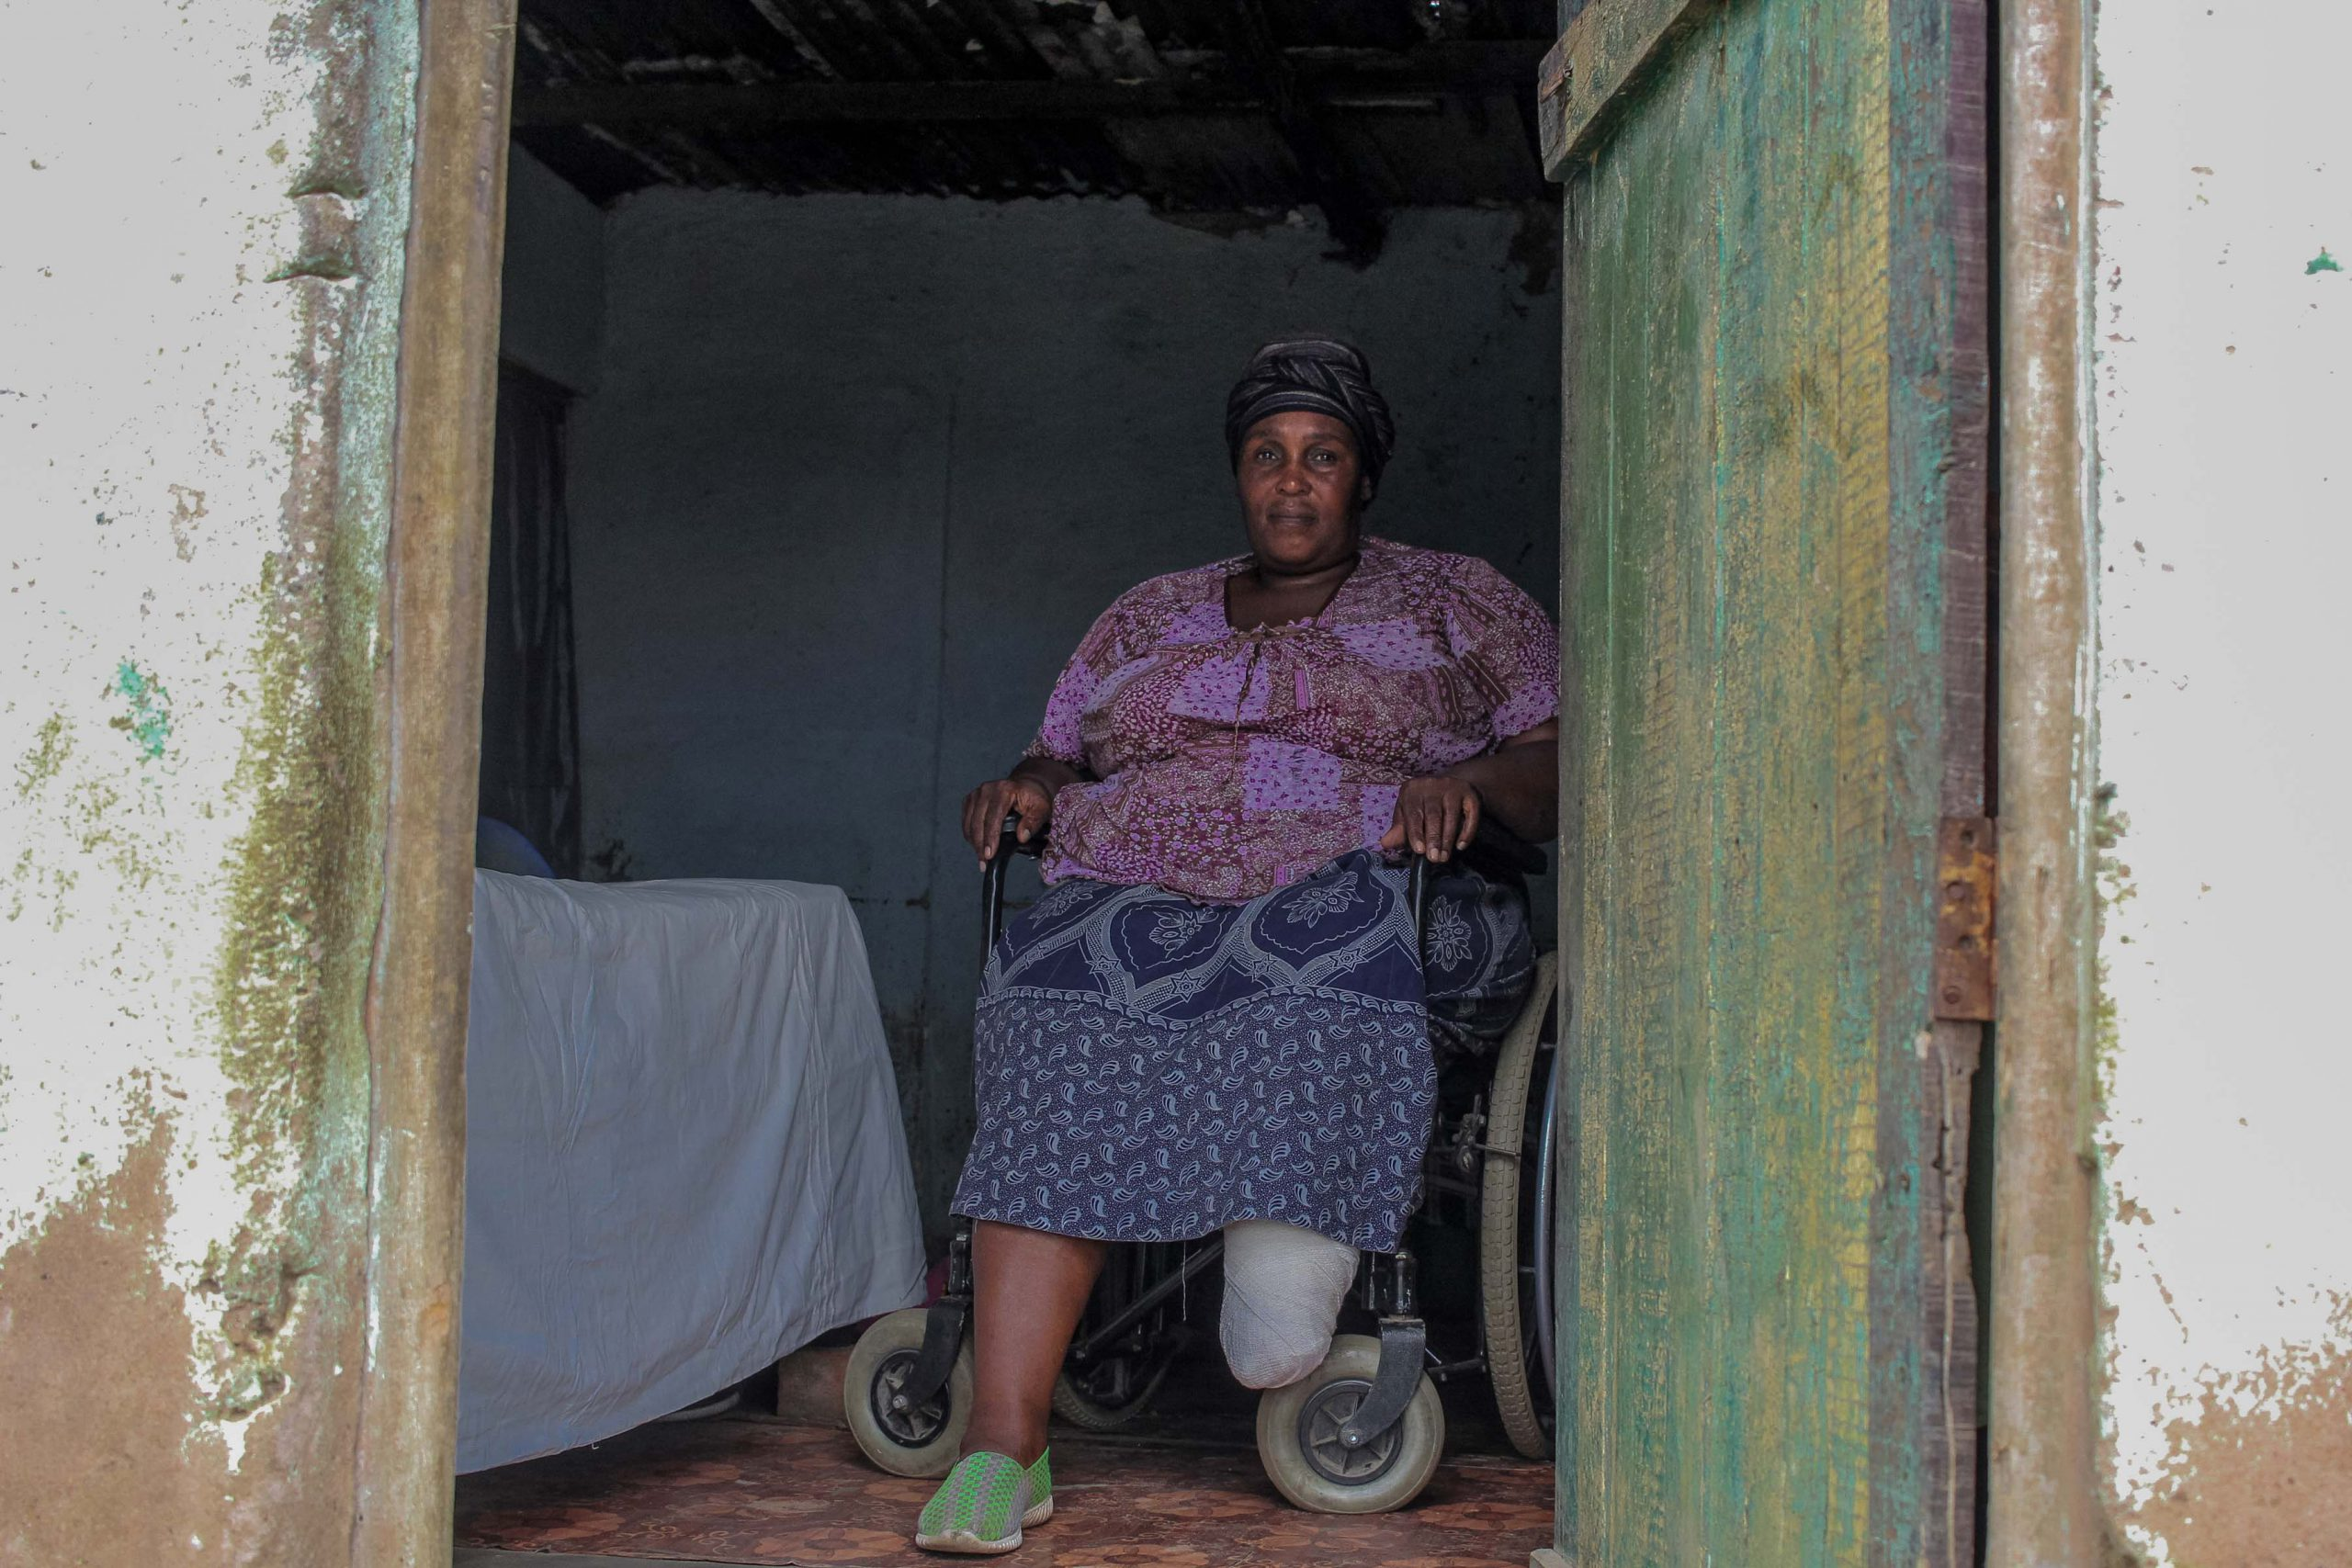 22 January 2020: Ntombizanele Spenuka lost a foot to diabetes three years ago. Her daughter helps her get around in a borrowed wheelchair, but she is not able to use the communal toilets and showers.